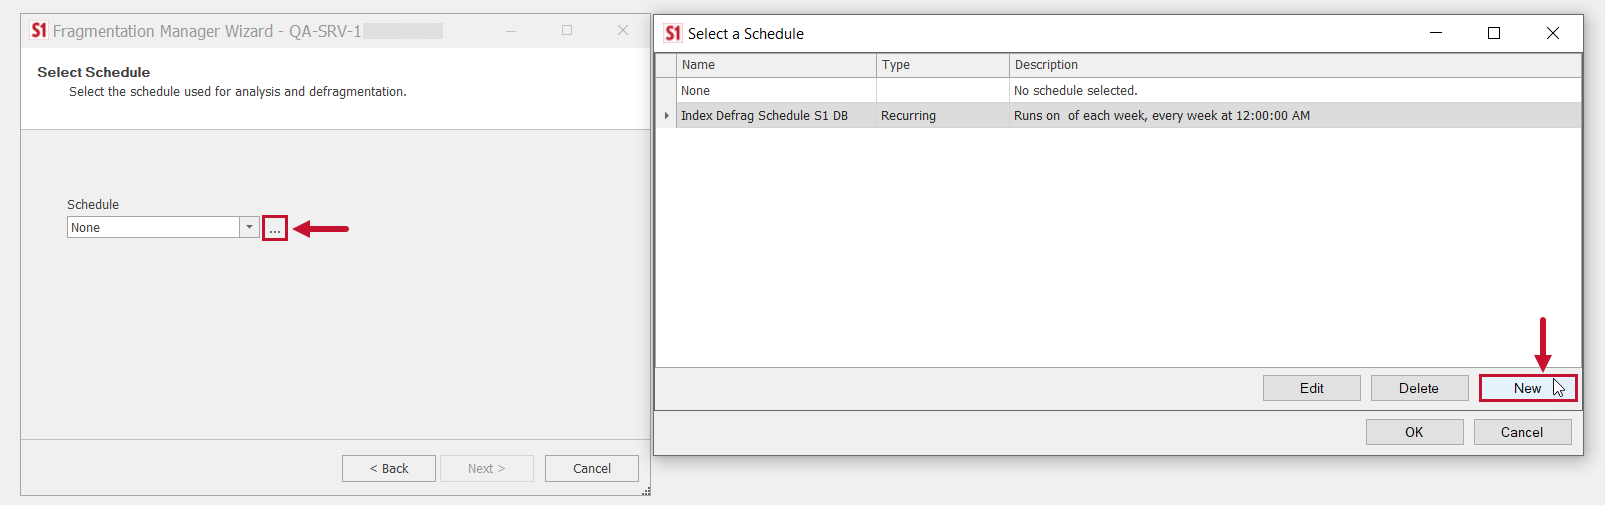 SentryOne Fragmentation Manager Wizard New Schedule